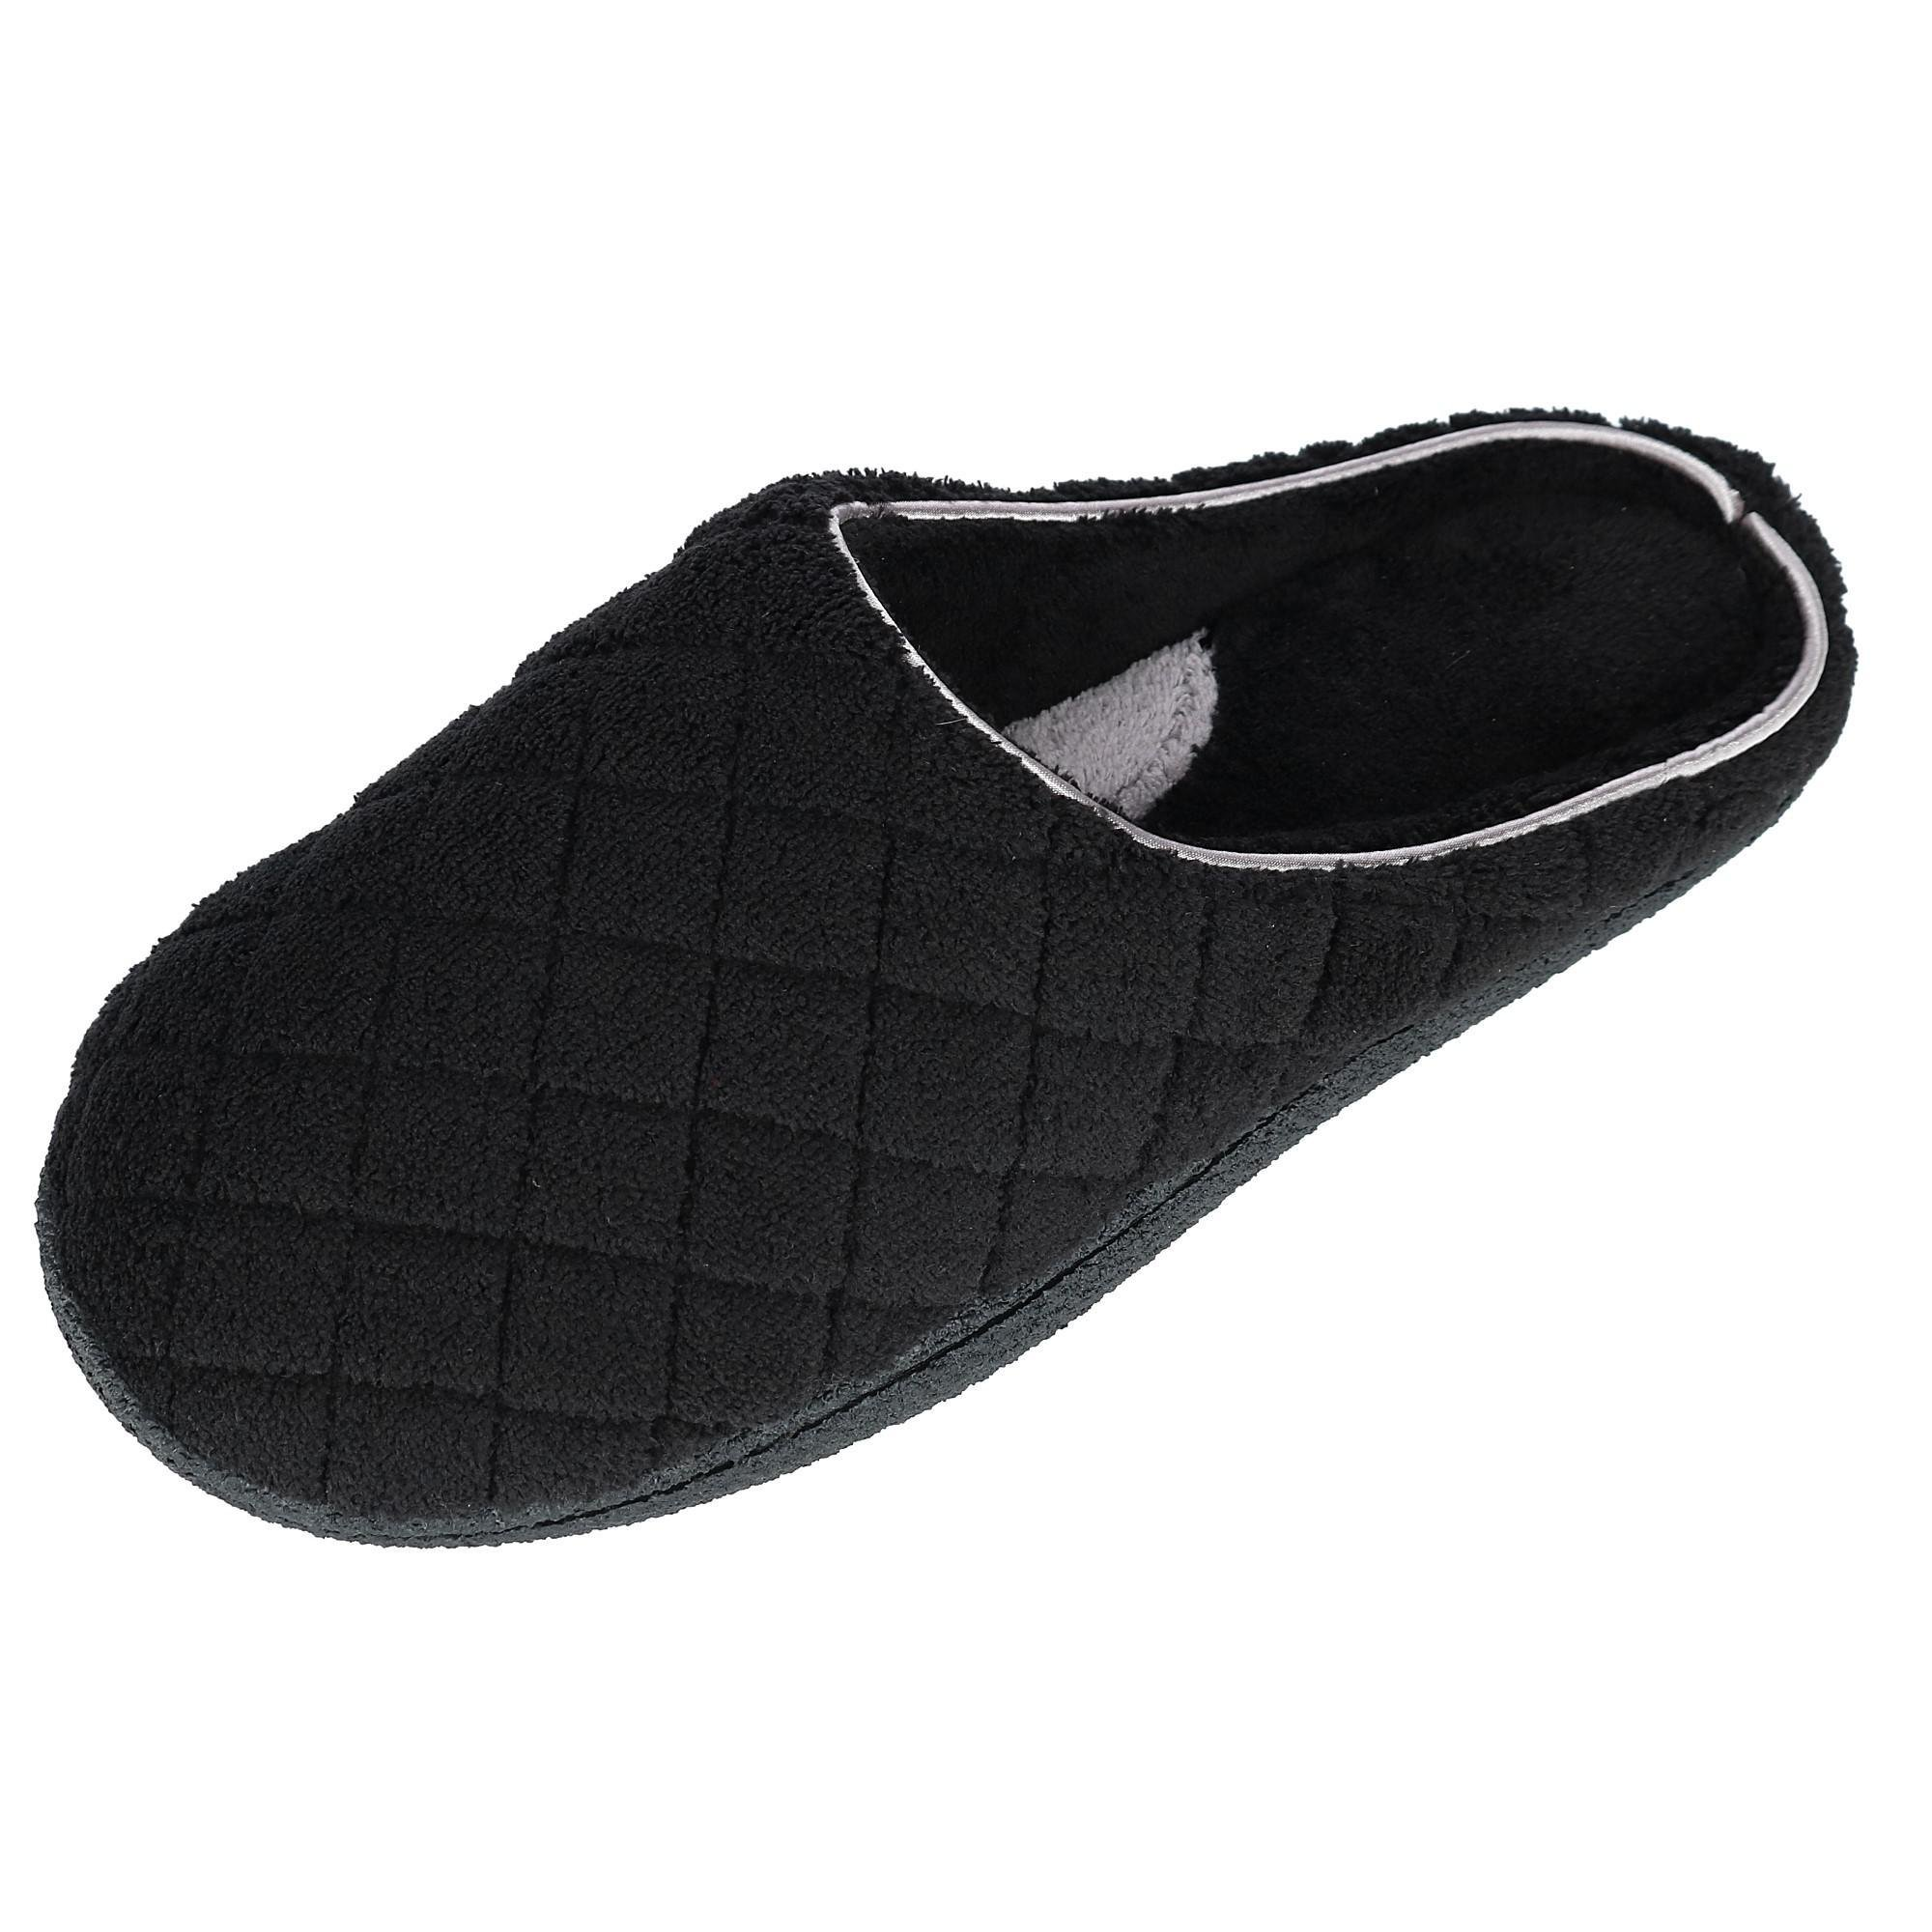 Dearfoams Women's Quilted Terry Clog Mule Slipper – Padded Terrycloth Slip-ONS with Skid-Resistant Rubber Outsole, Black, Large/9-10 M US by Dearfoams (Image #1)